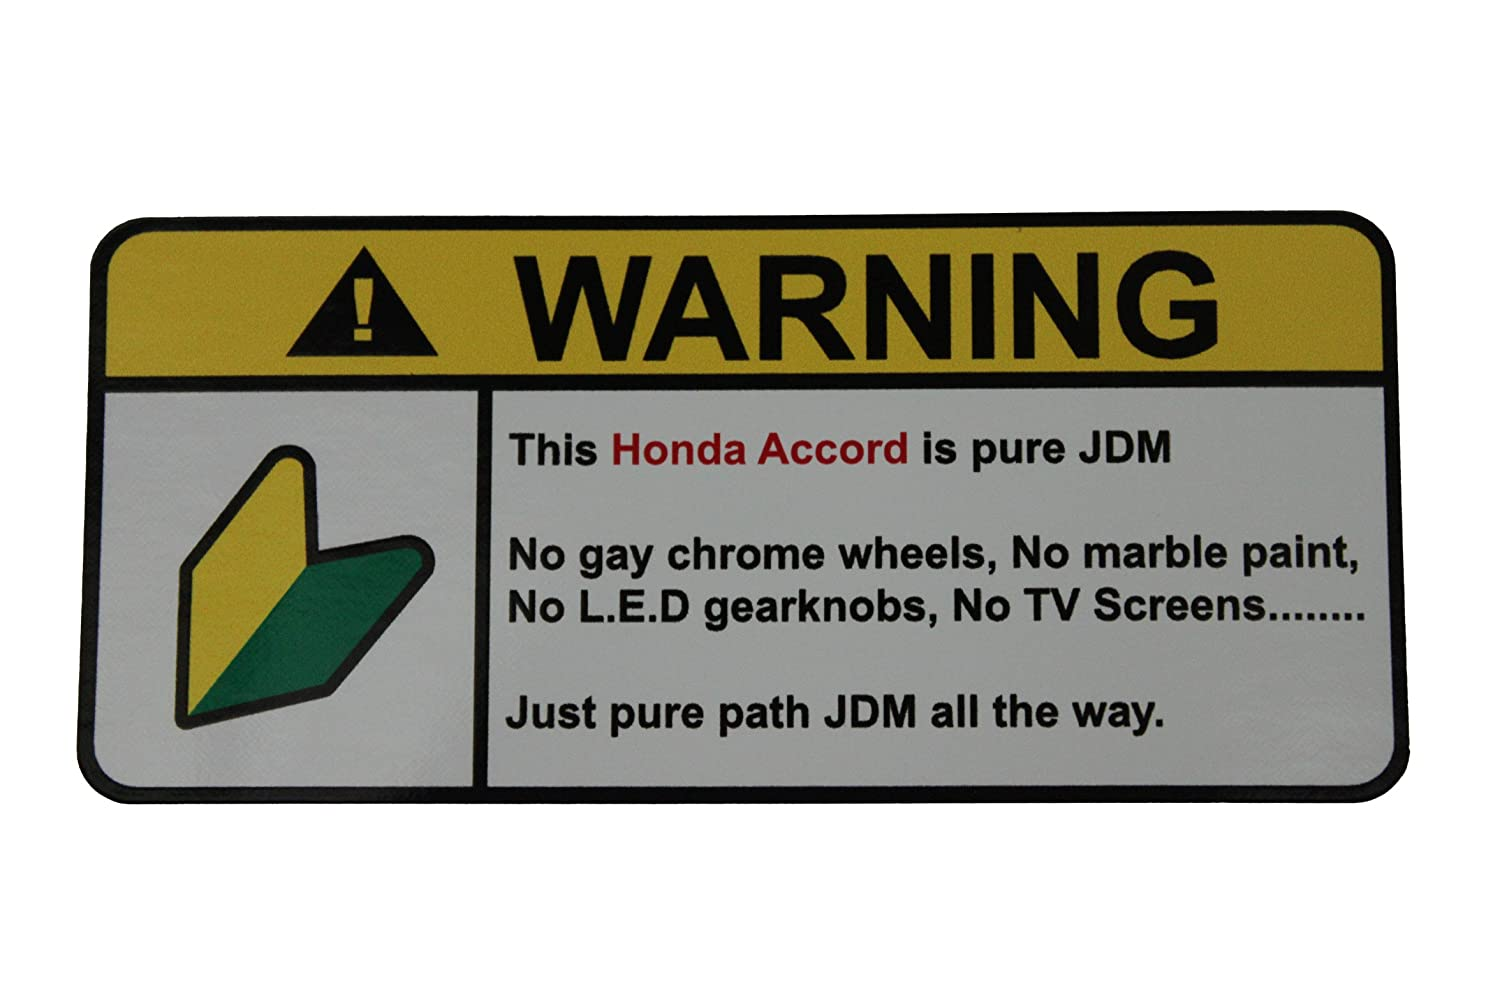 Amazoncom Honda Accord Pure JDM Warning Decal Sticker Automotive - Stickers for honda accord